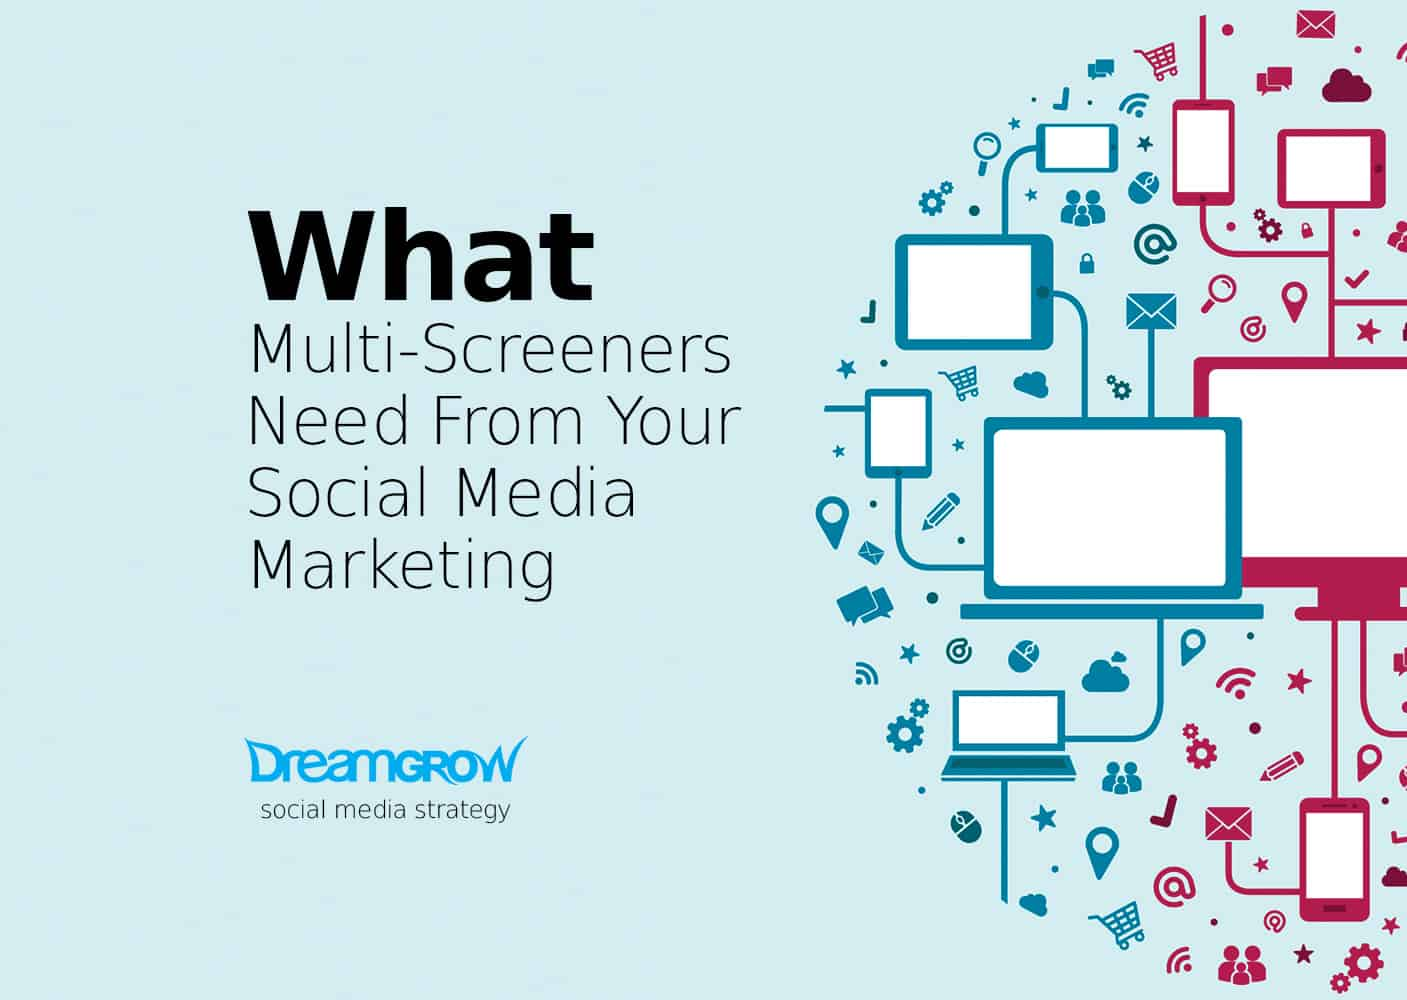 multi-screeners social media marketing